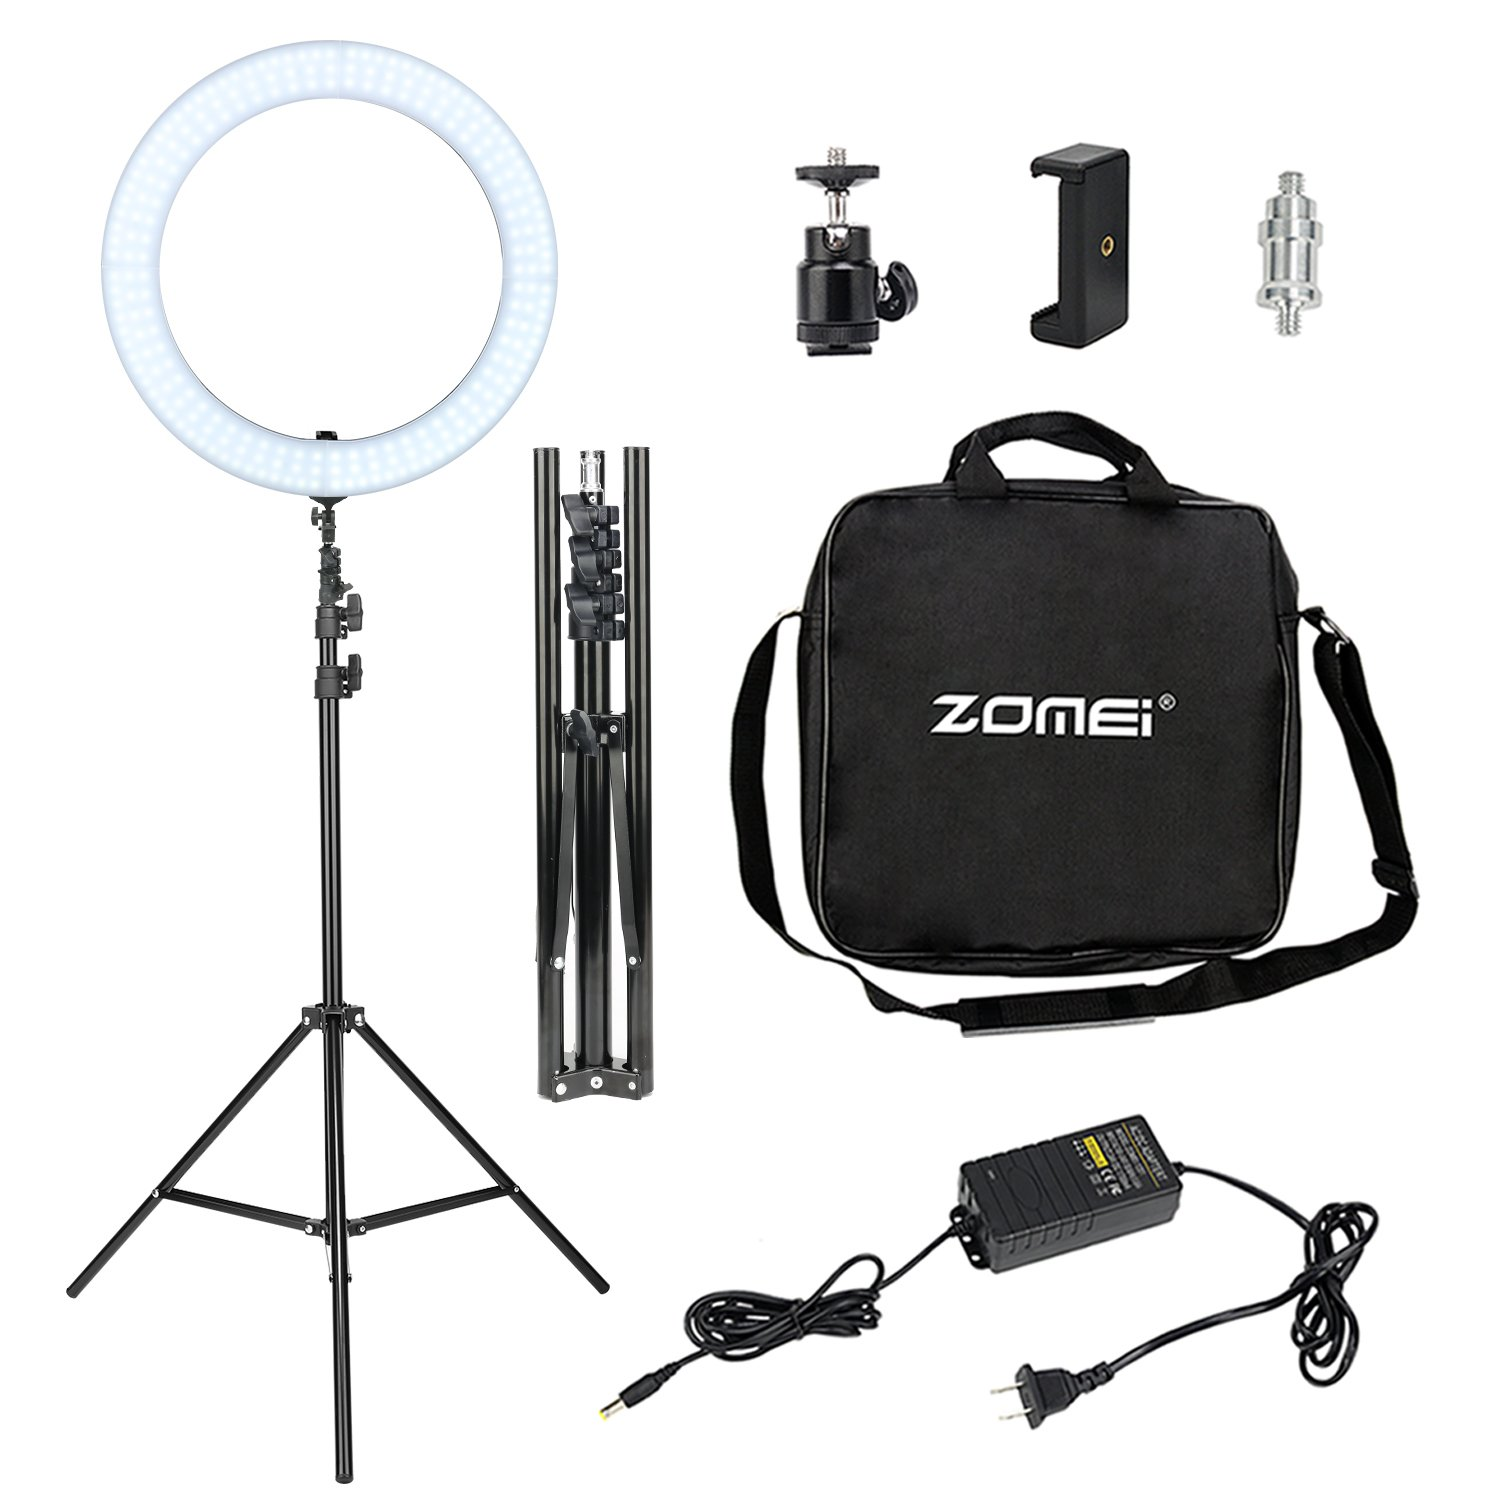 LED Ring Light With Stand, Zomei 18 Inches Ring Light For Camera Smartphone  Youtube Video Shooting And Makeup, Dimmable 2700 5500K Studio Lighting With  ...